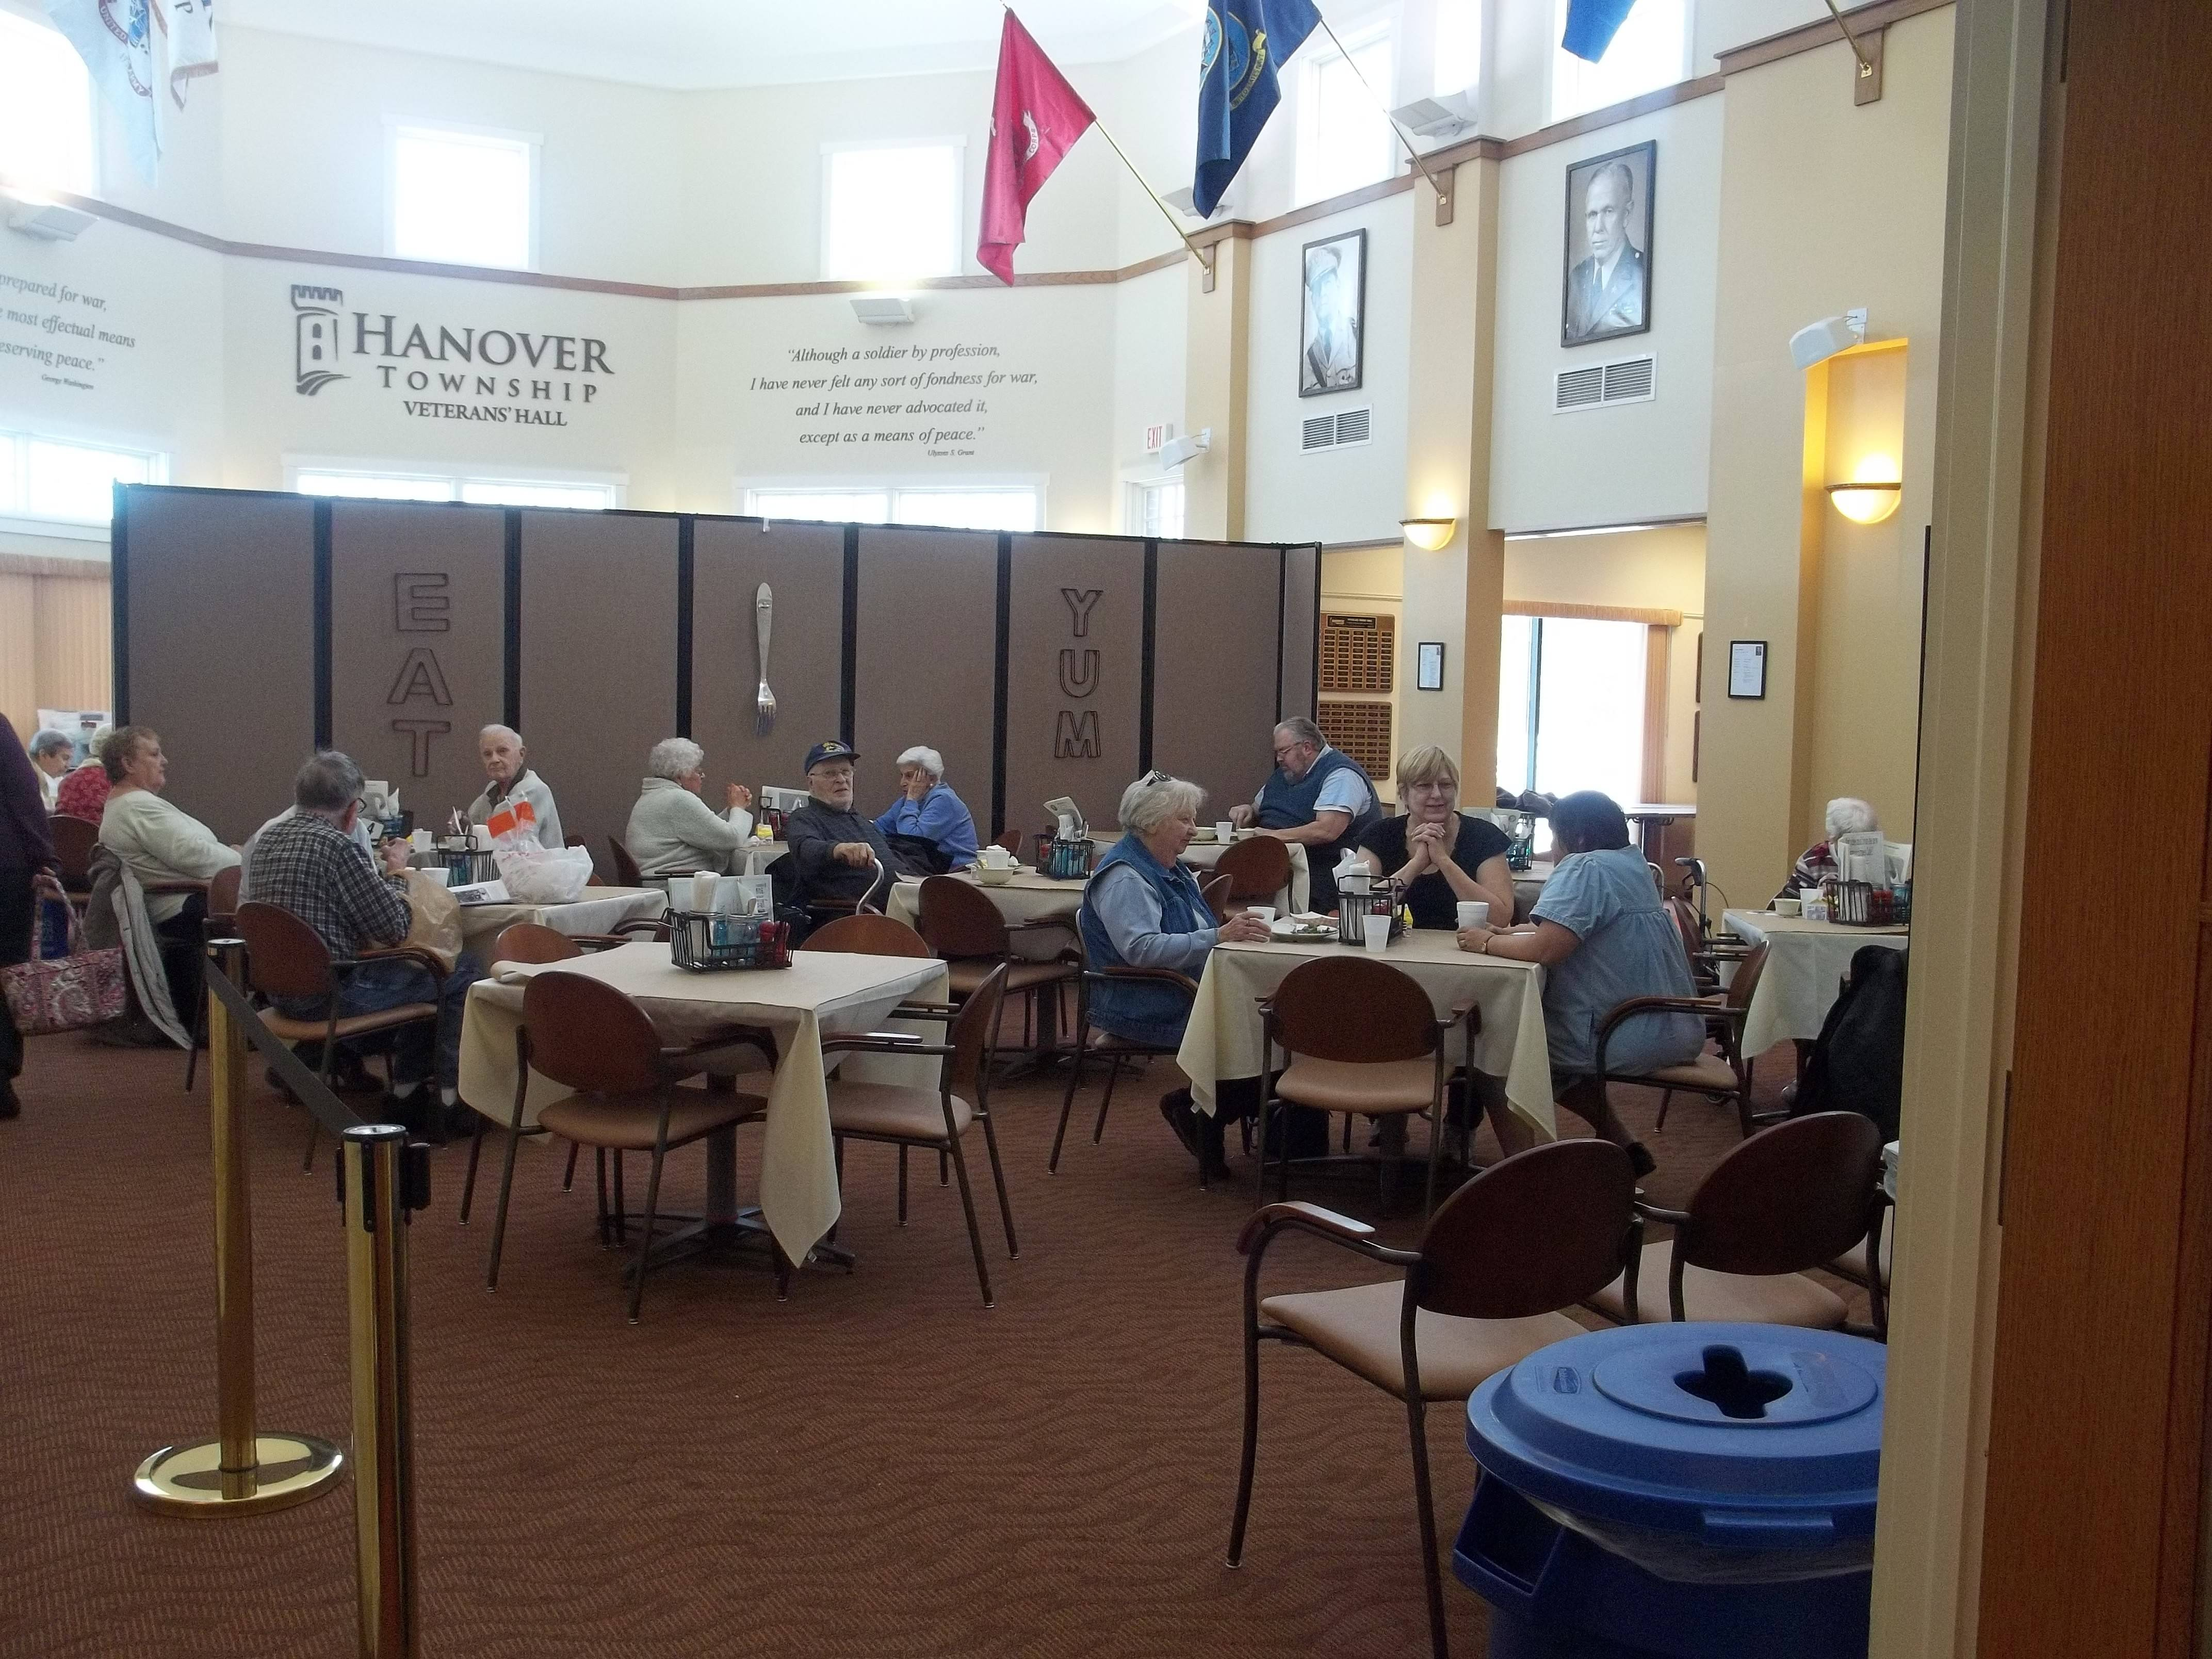 The Stars-n-Stripes Cafe offers fresh, nutritious lunches at the Hanover Township Senior Center in Bartlett.